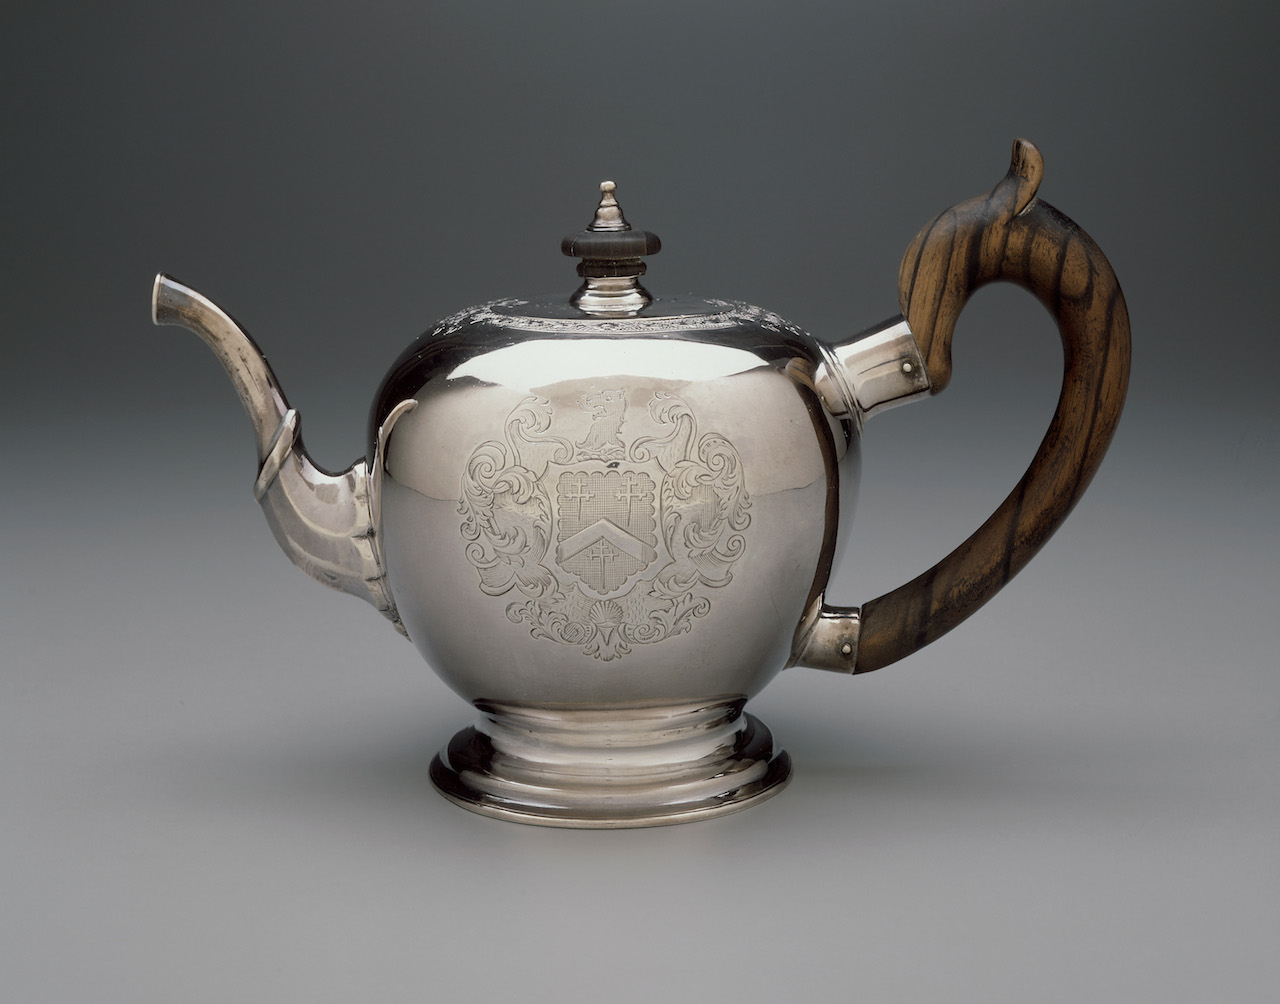 Teapot by Jacob Hurd (Boston, about 1730–35), silver (Gift of William Storer Eaton in the name of Miss Georgiana G. Eaton, © Museum of Fine Arts, Boston)